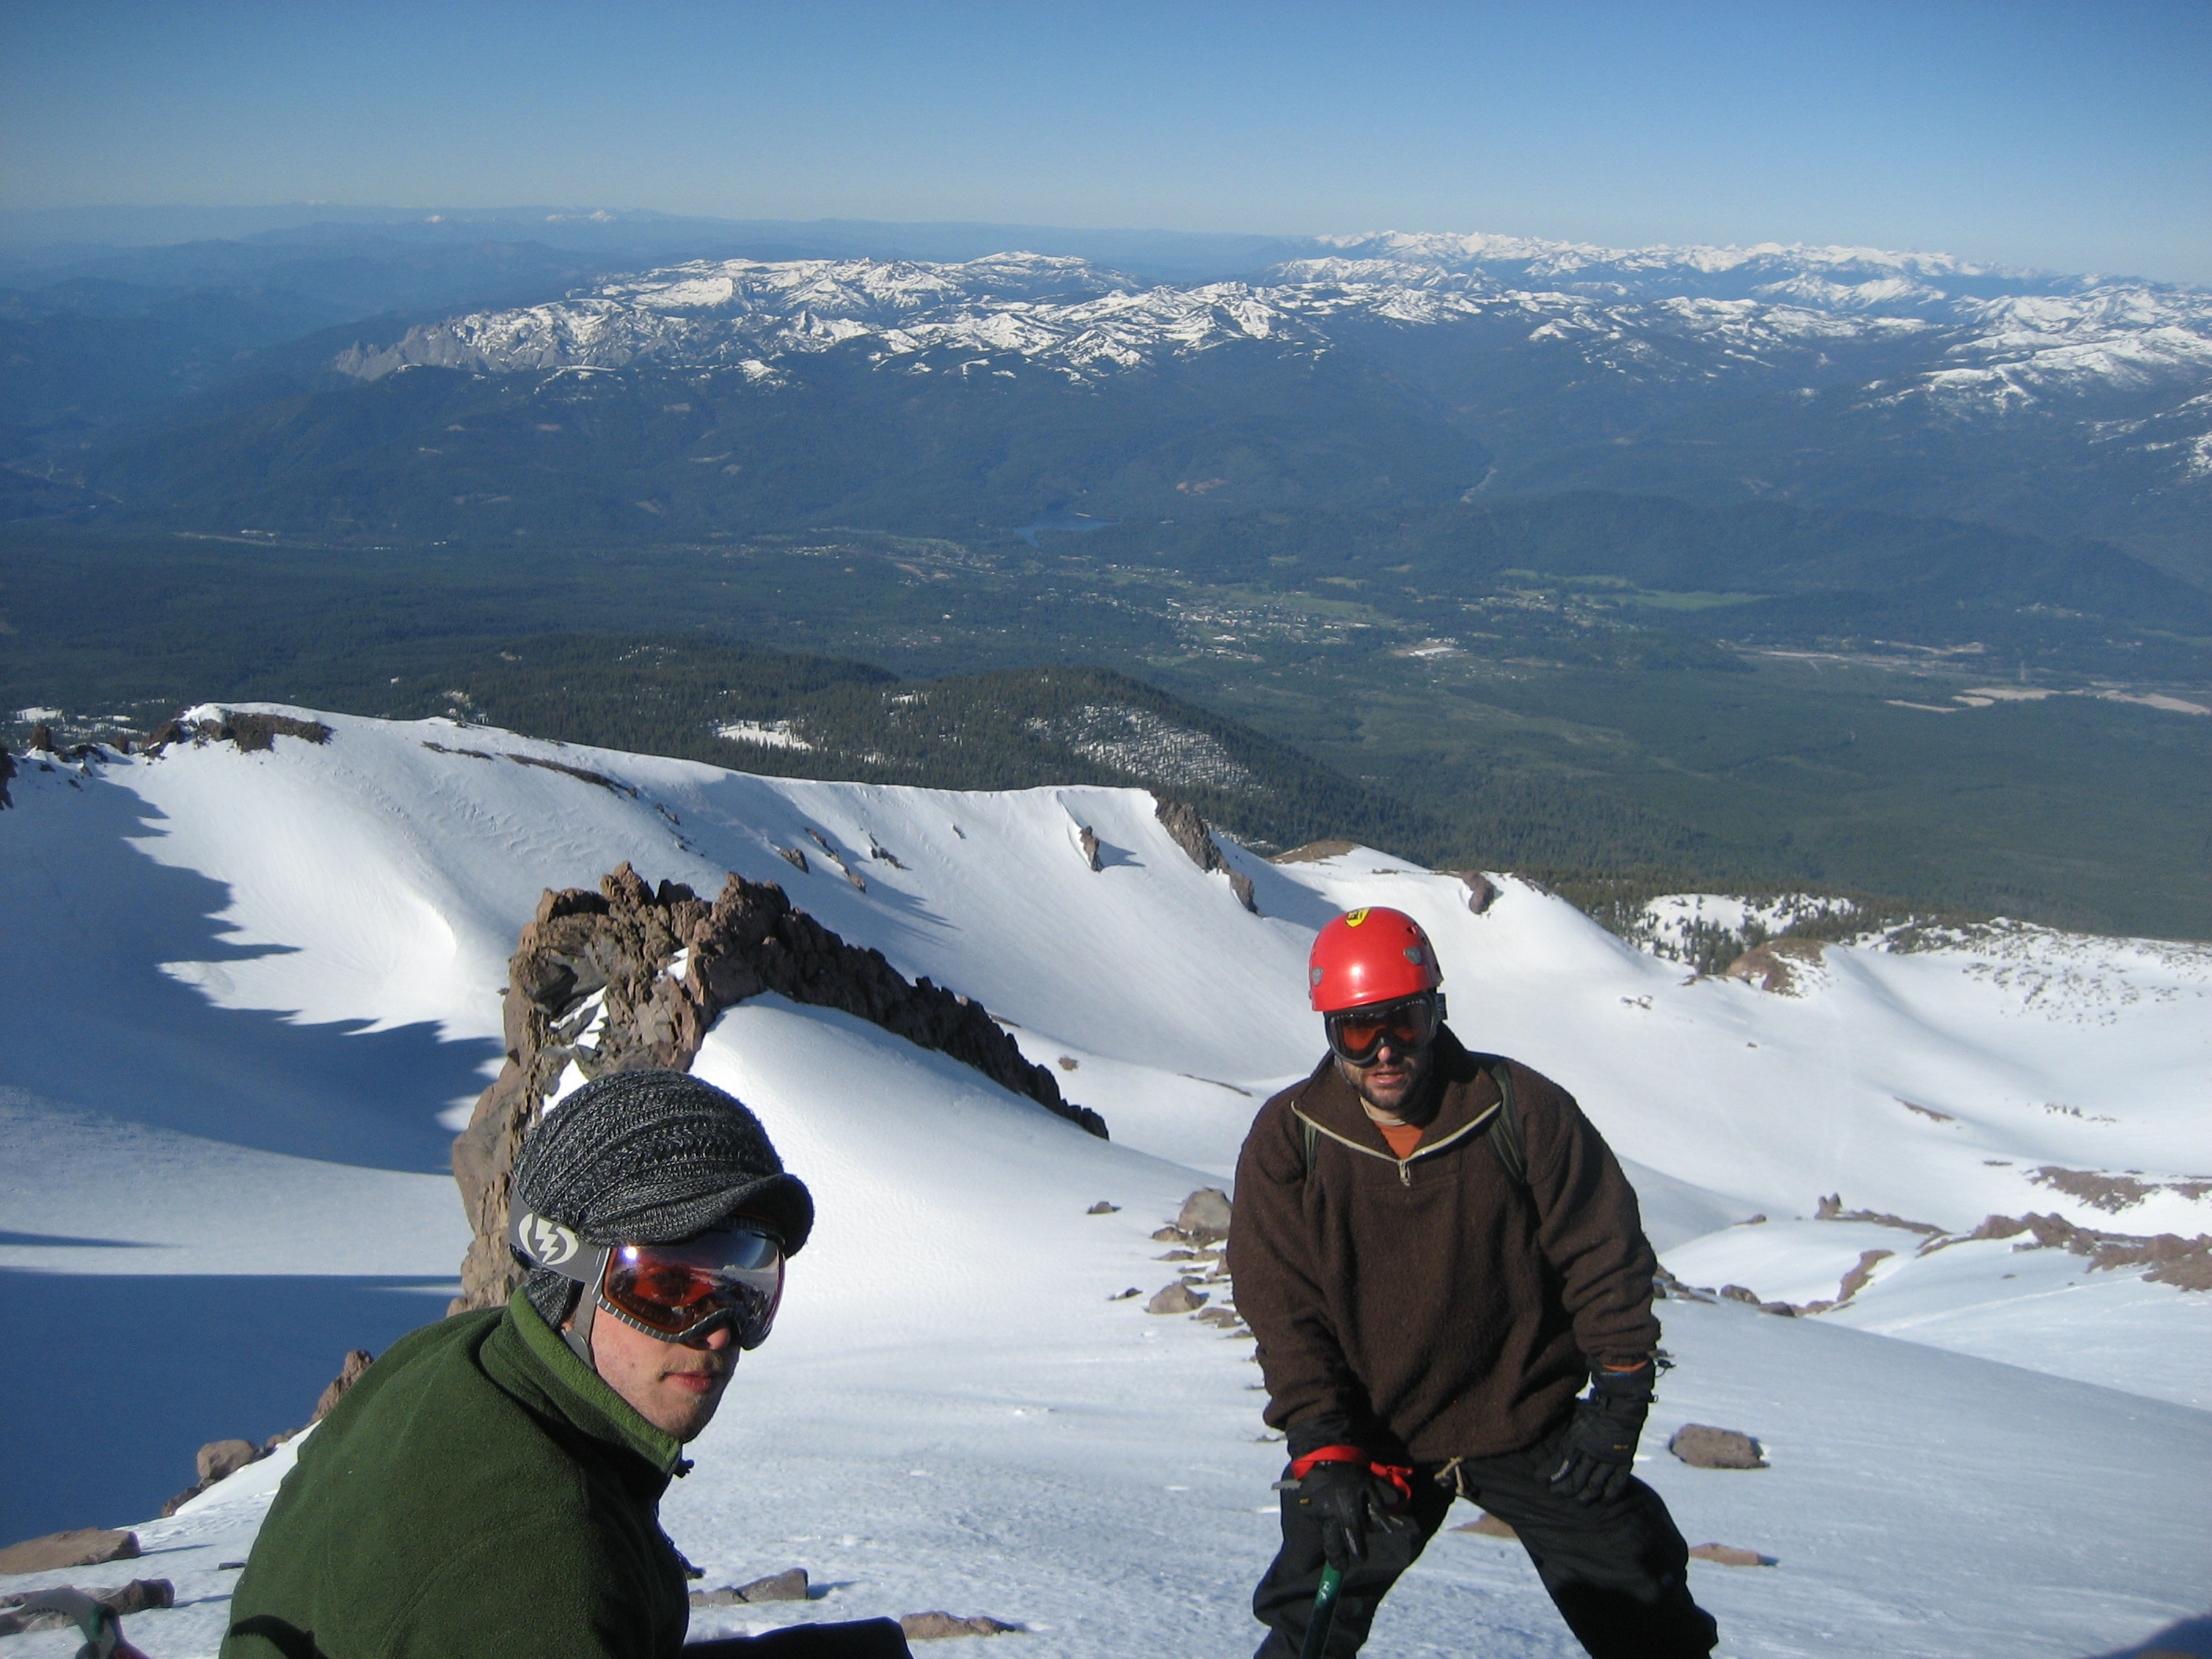 About to descend Mt. Shasta (by helicopter), 2010. (photo by D. Moore)